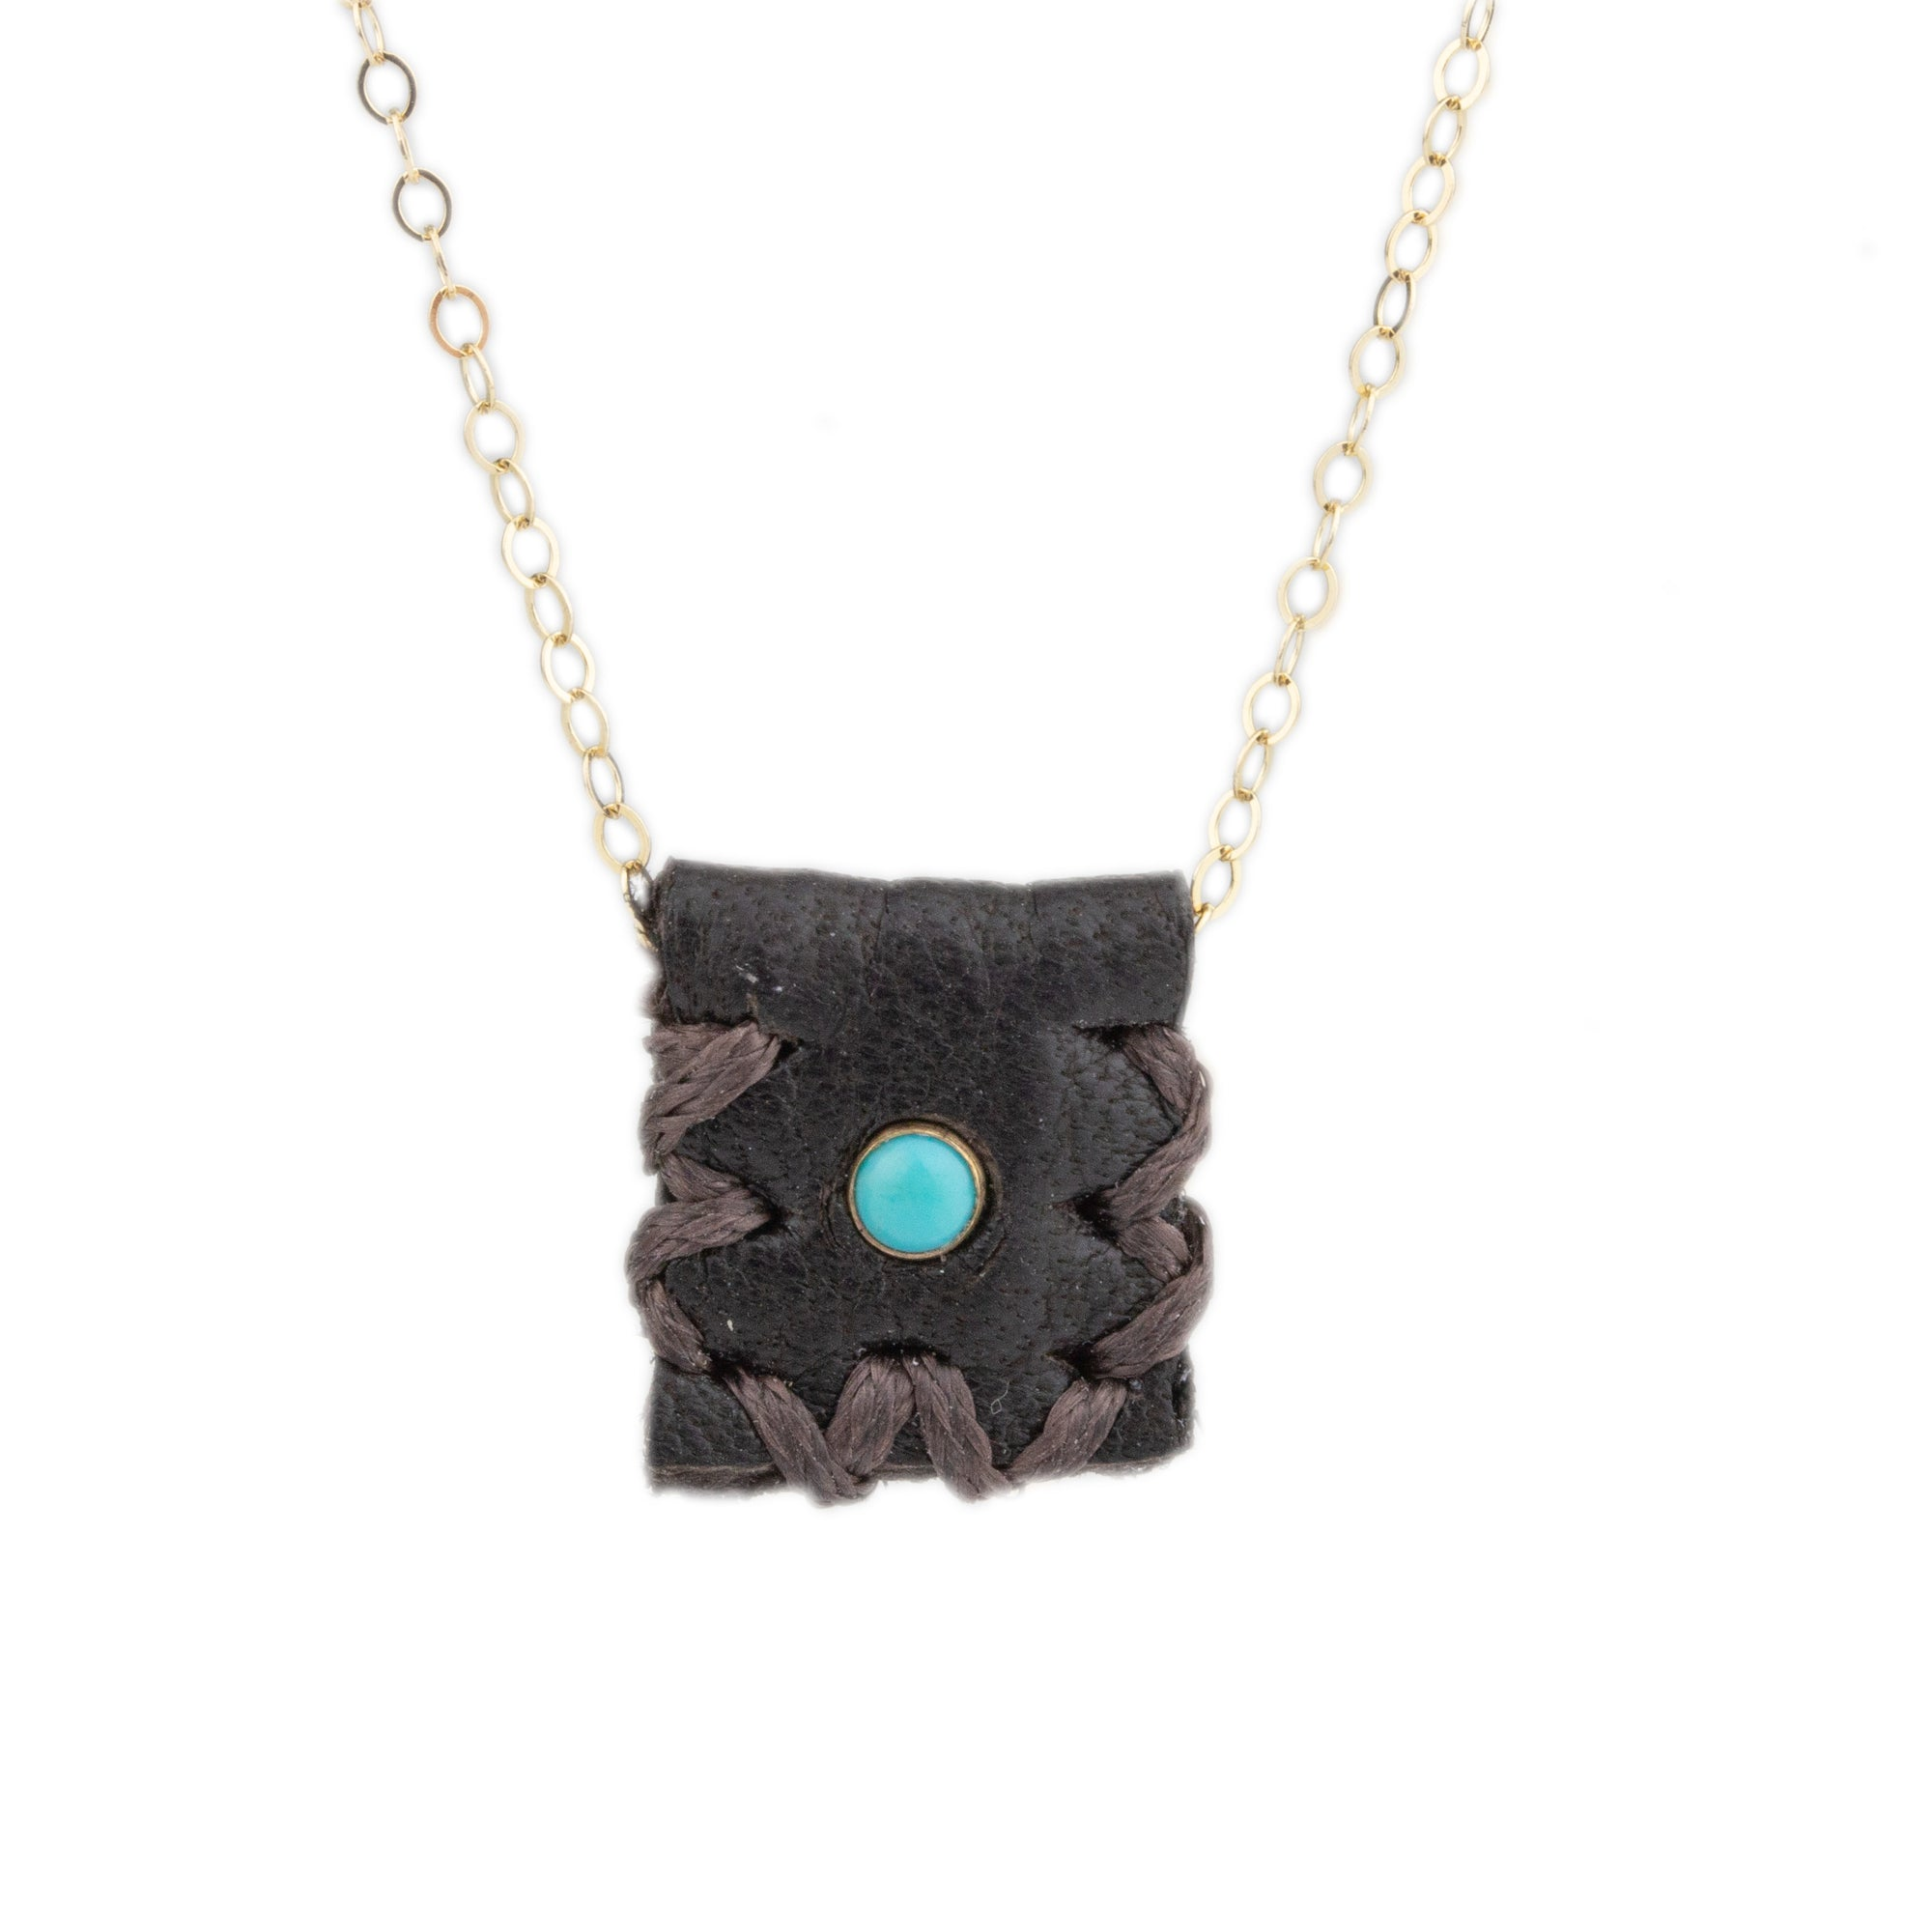 Turquoise Medicine Bag Necklace